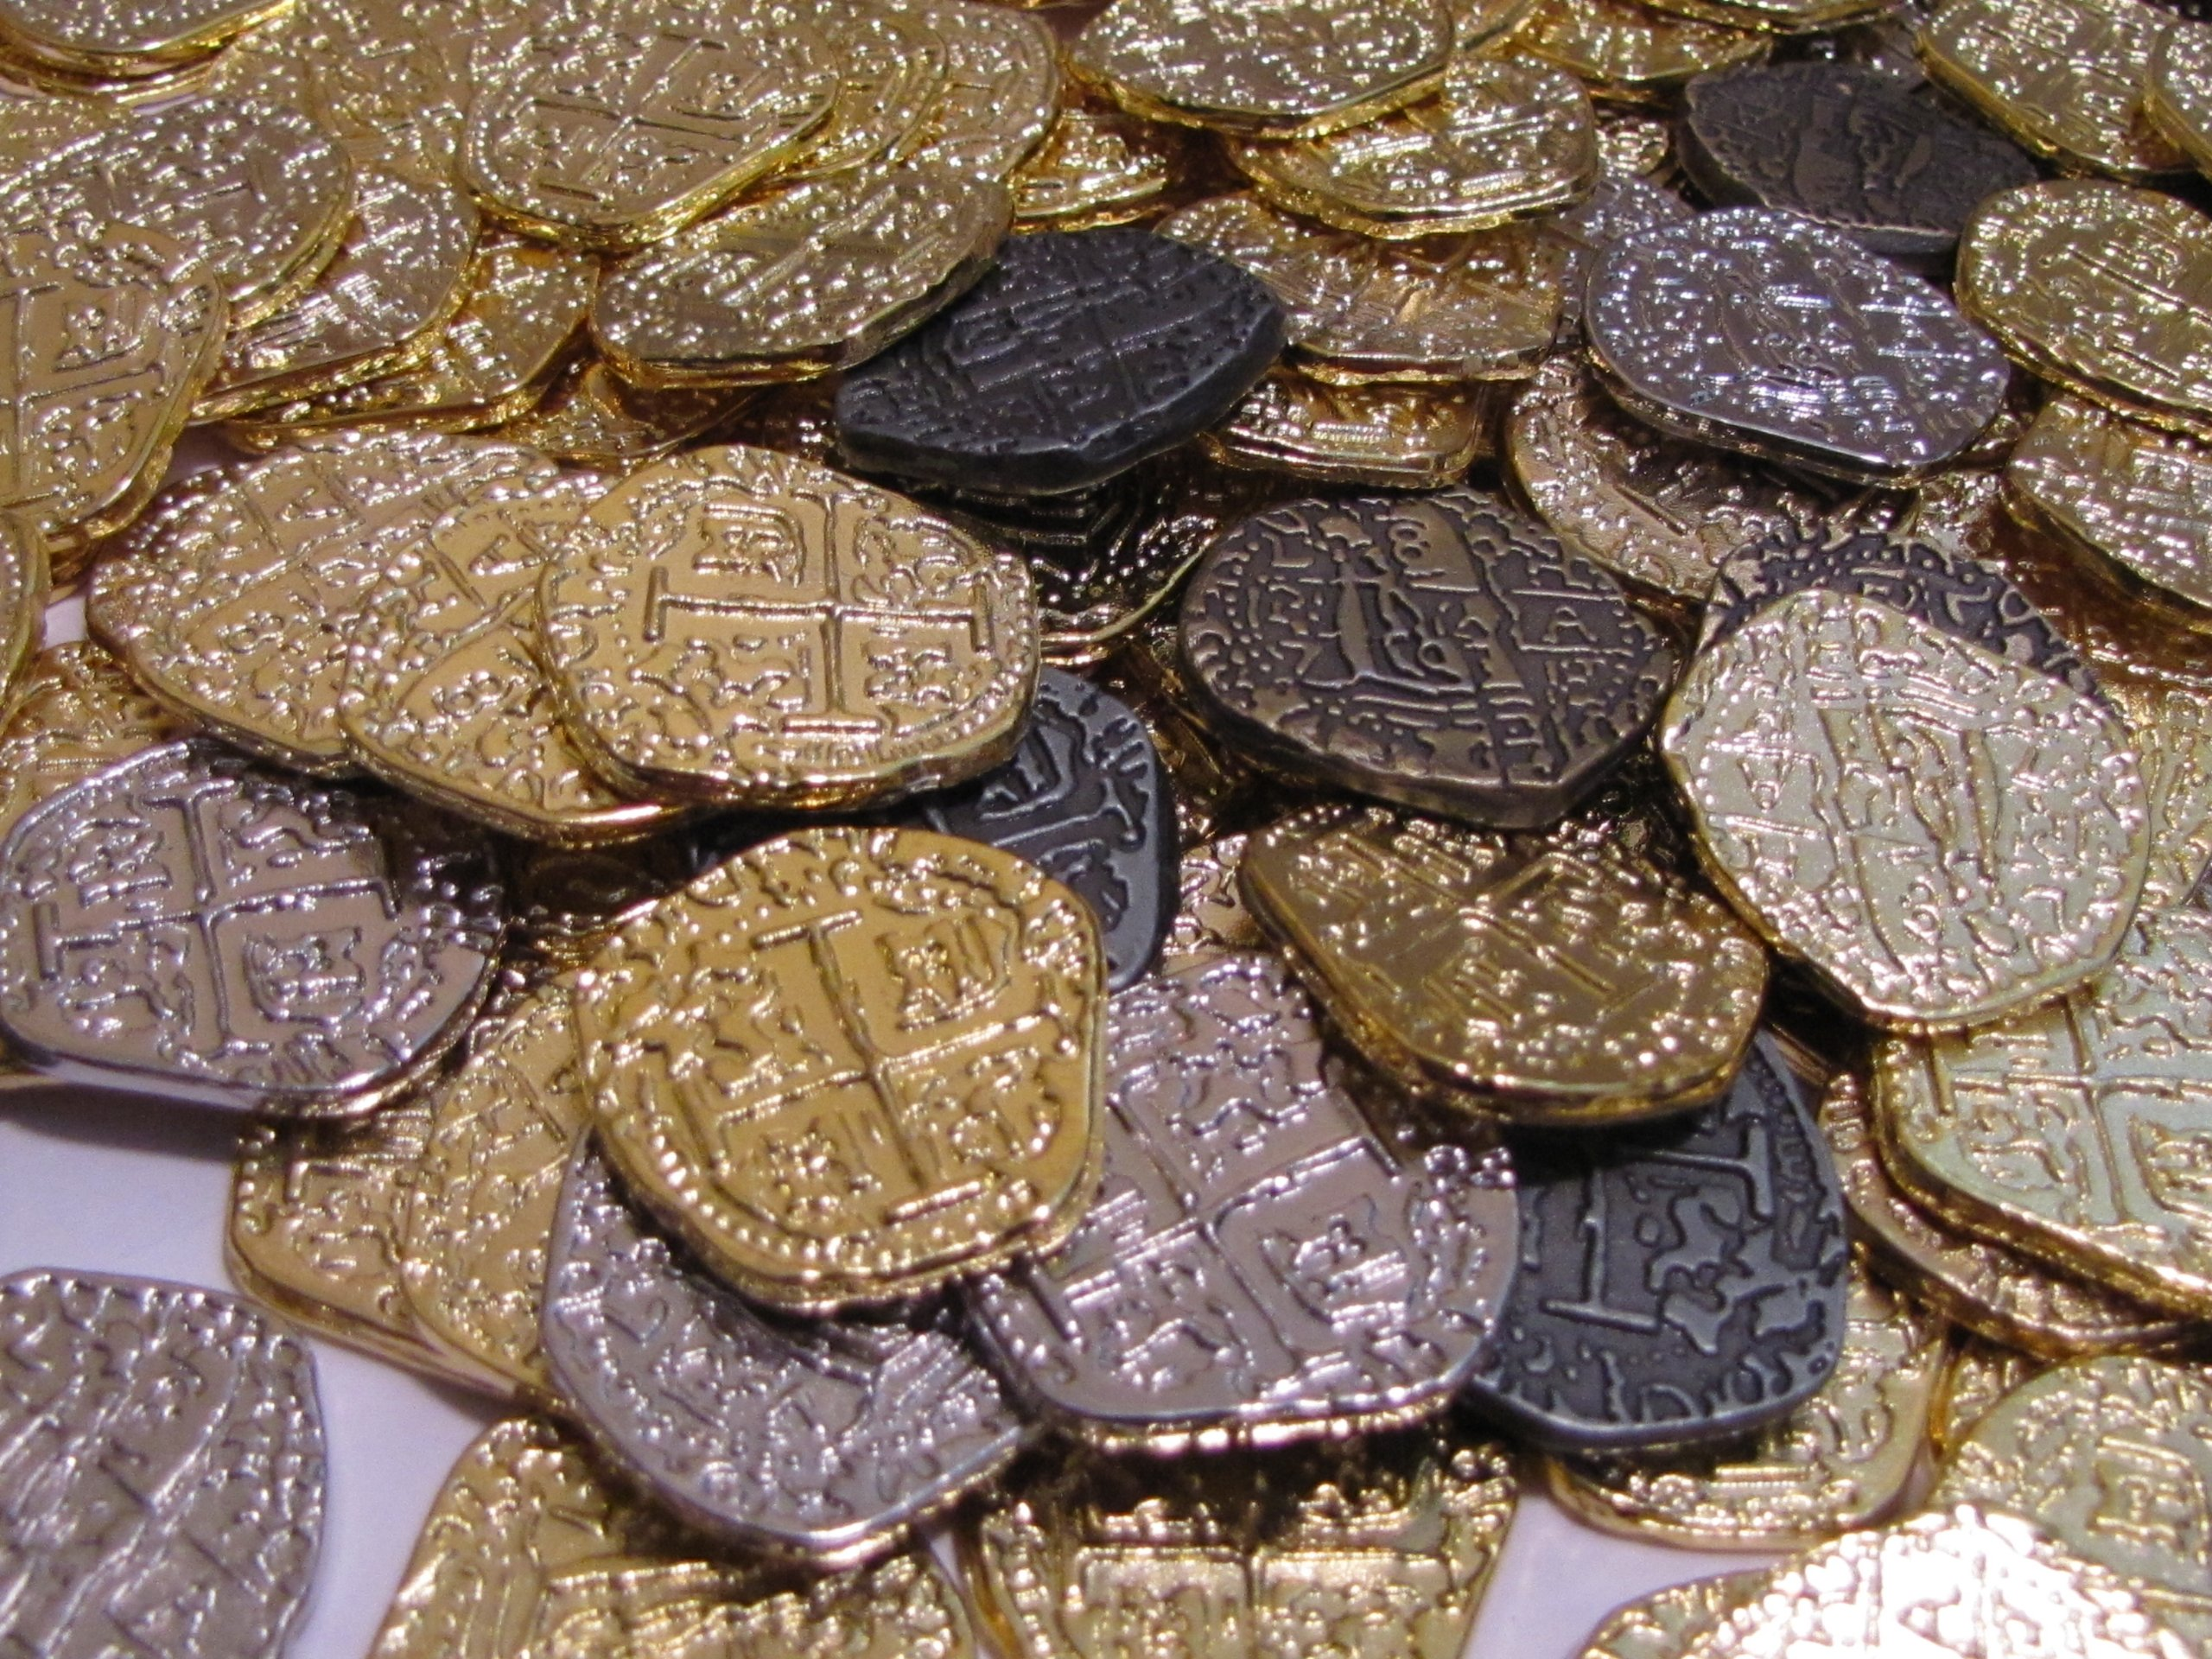 Pirate Treasure Coins - 30 Metal Gold and Silver Doubloon Replicas Beverly Oaks